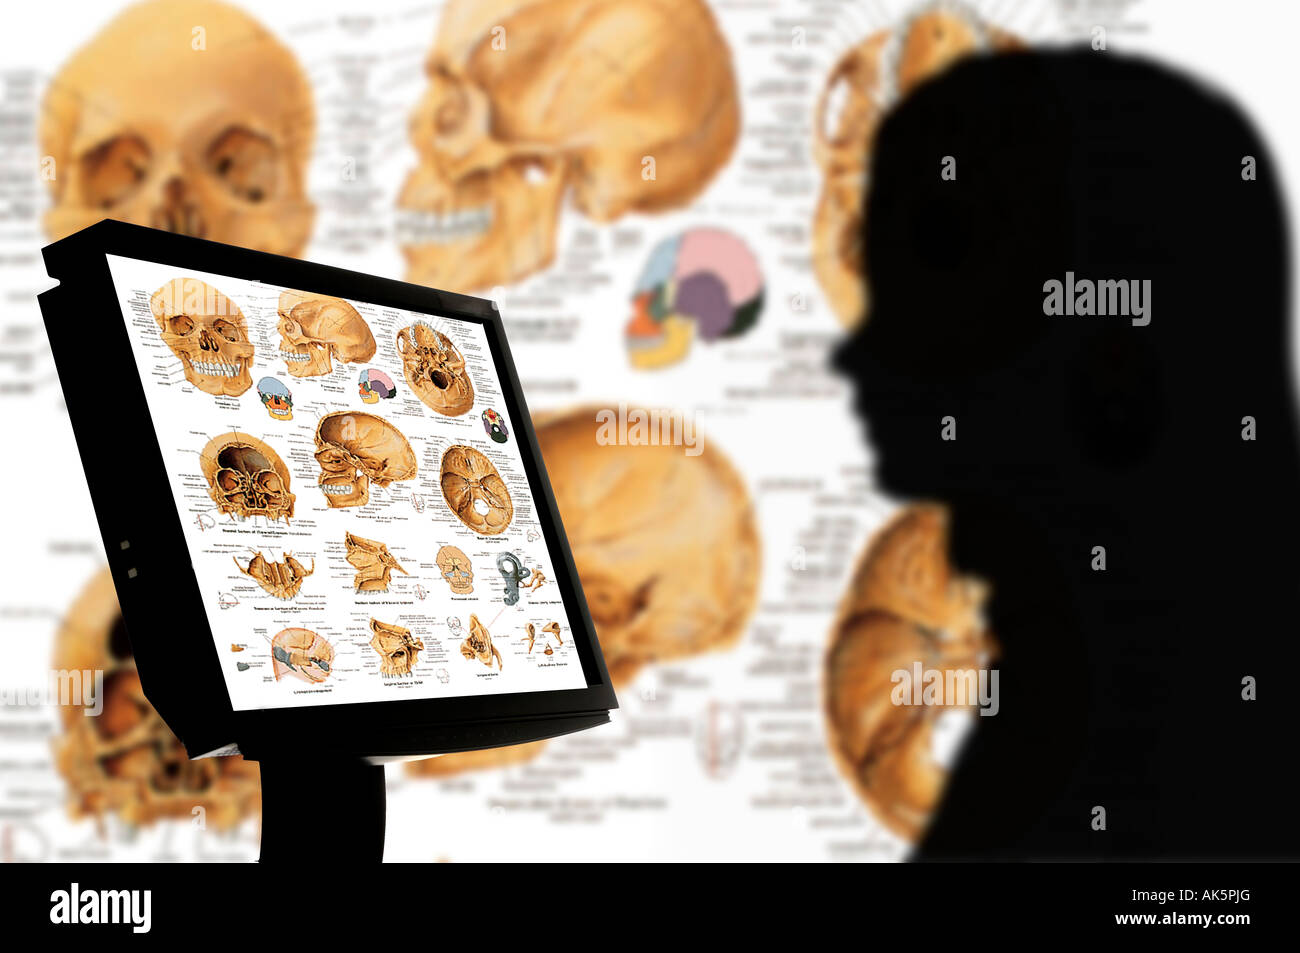 anthropology student studying skeletons and skulls on computer monitor - Stock Image